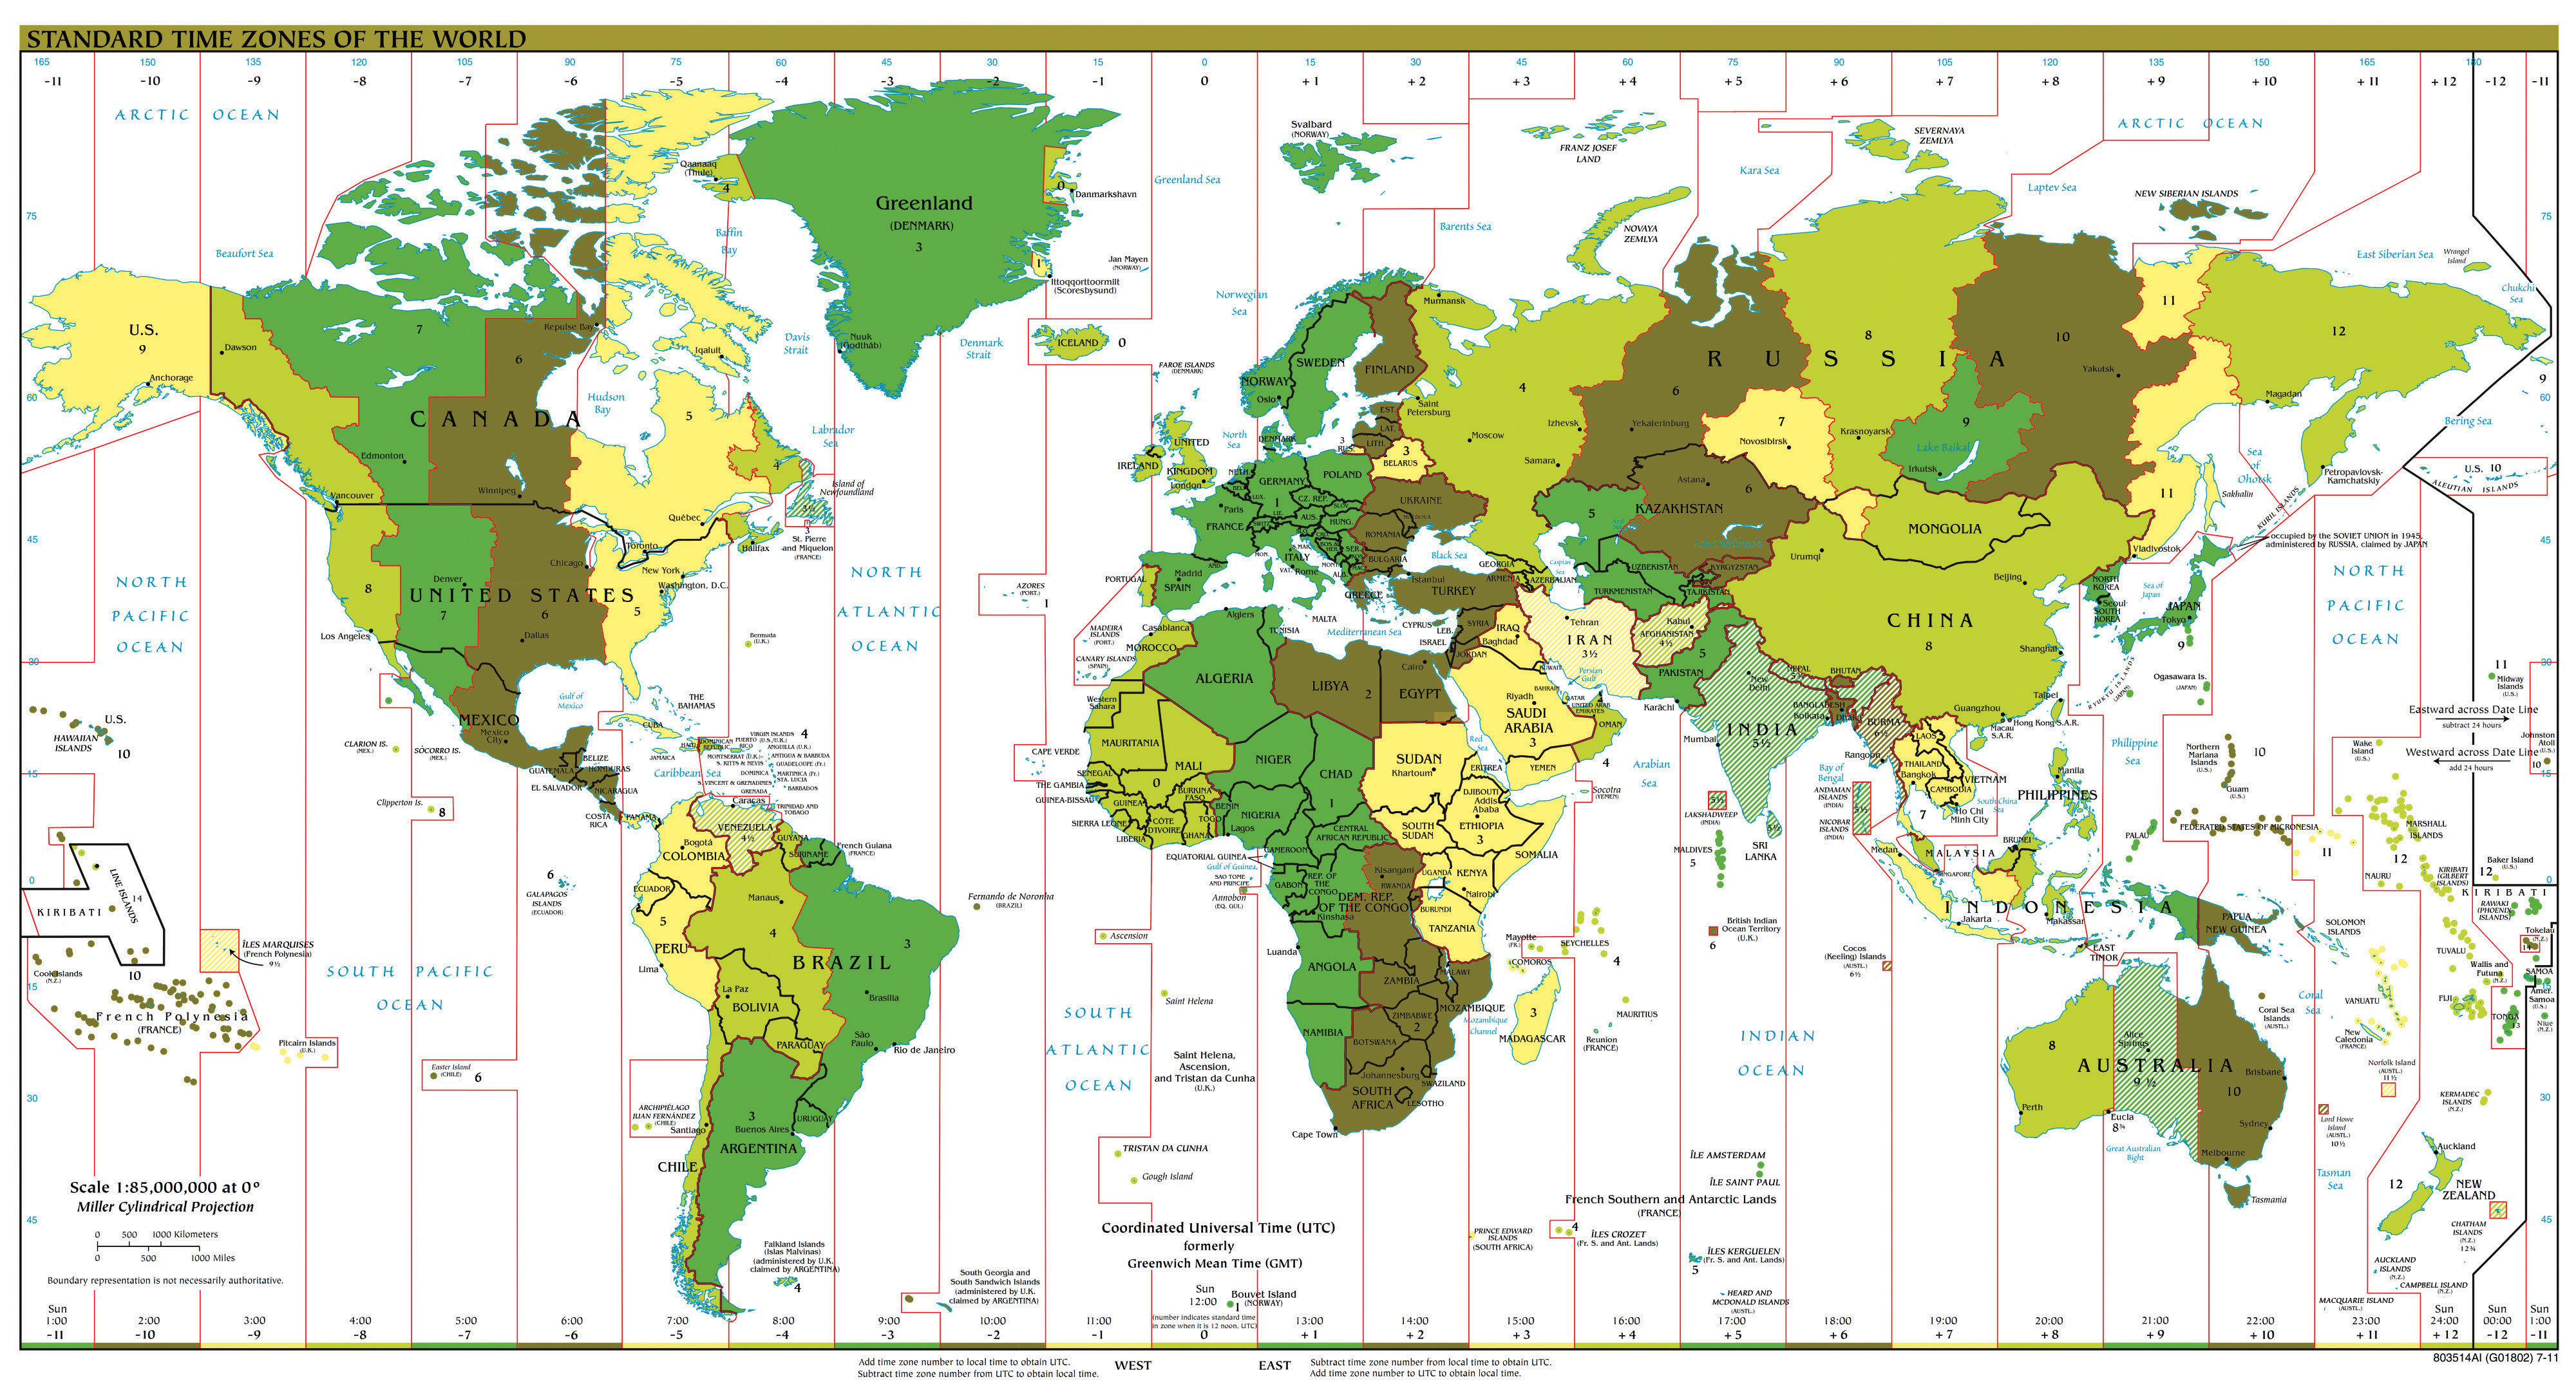 World regional geography royal berglee the twenty four times zones are based on the prime meridian in regard to universal coordinated time utc greenwich mean time gmt or zulu time z gumiabroncs Gallery